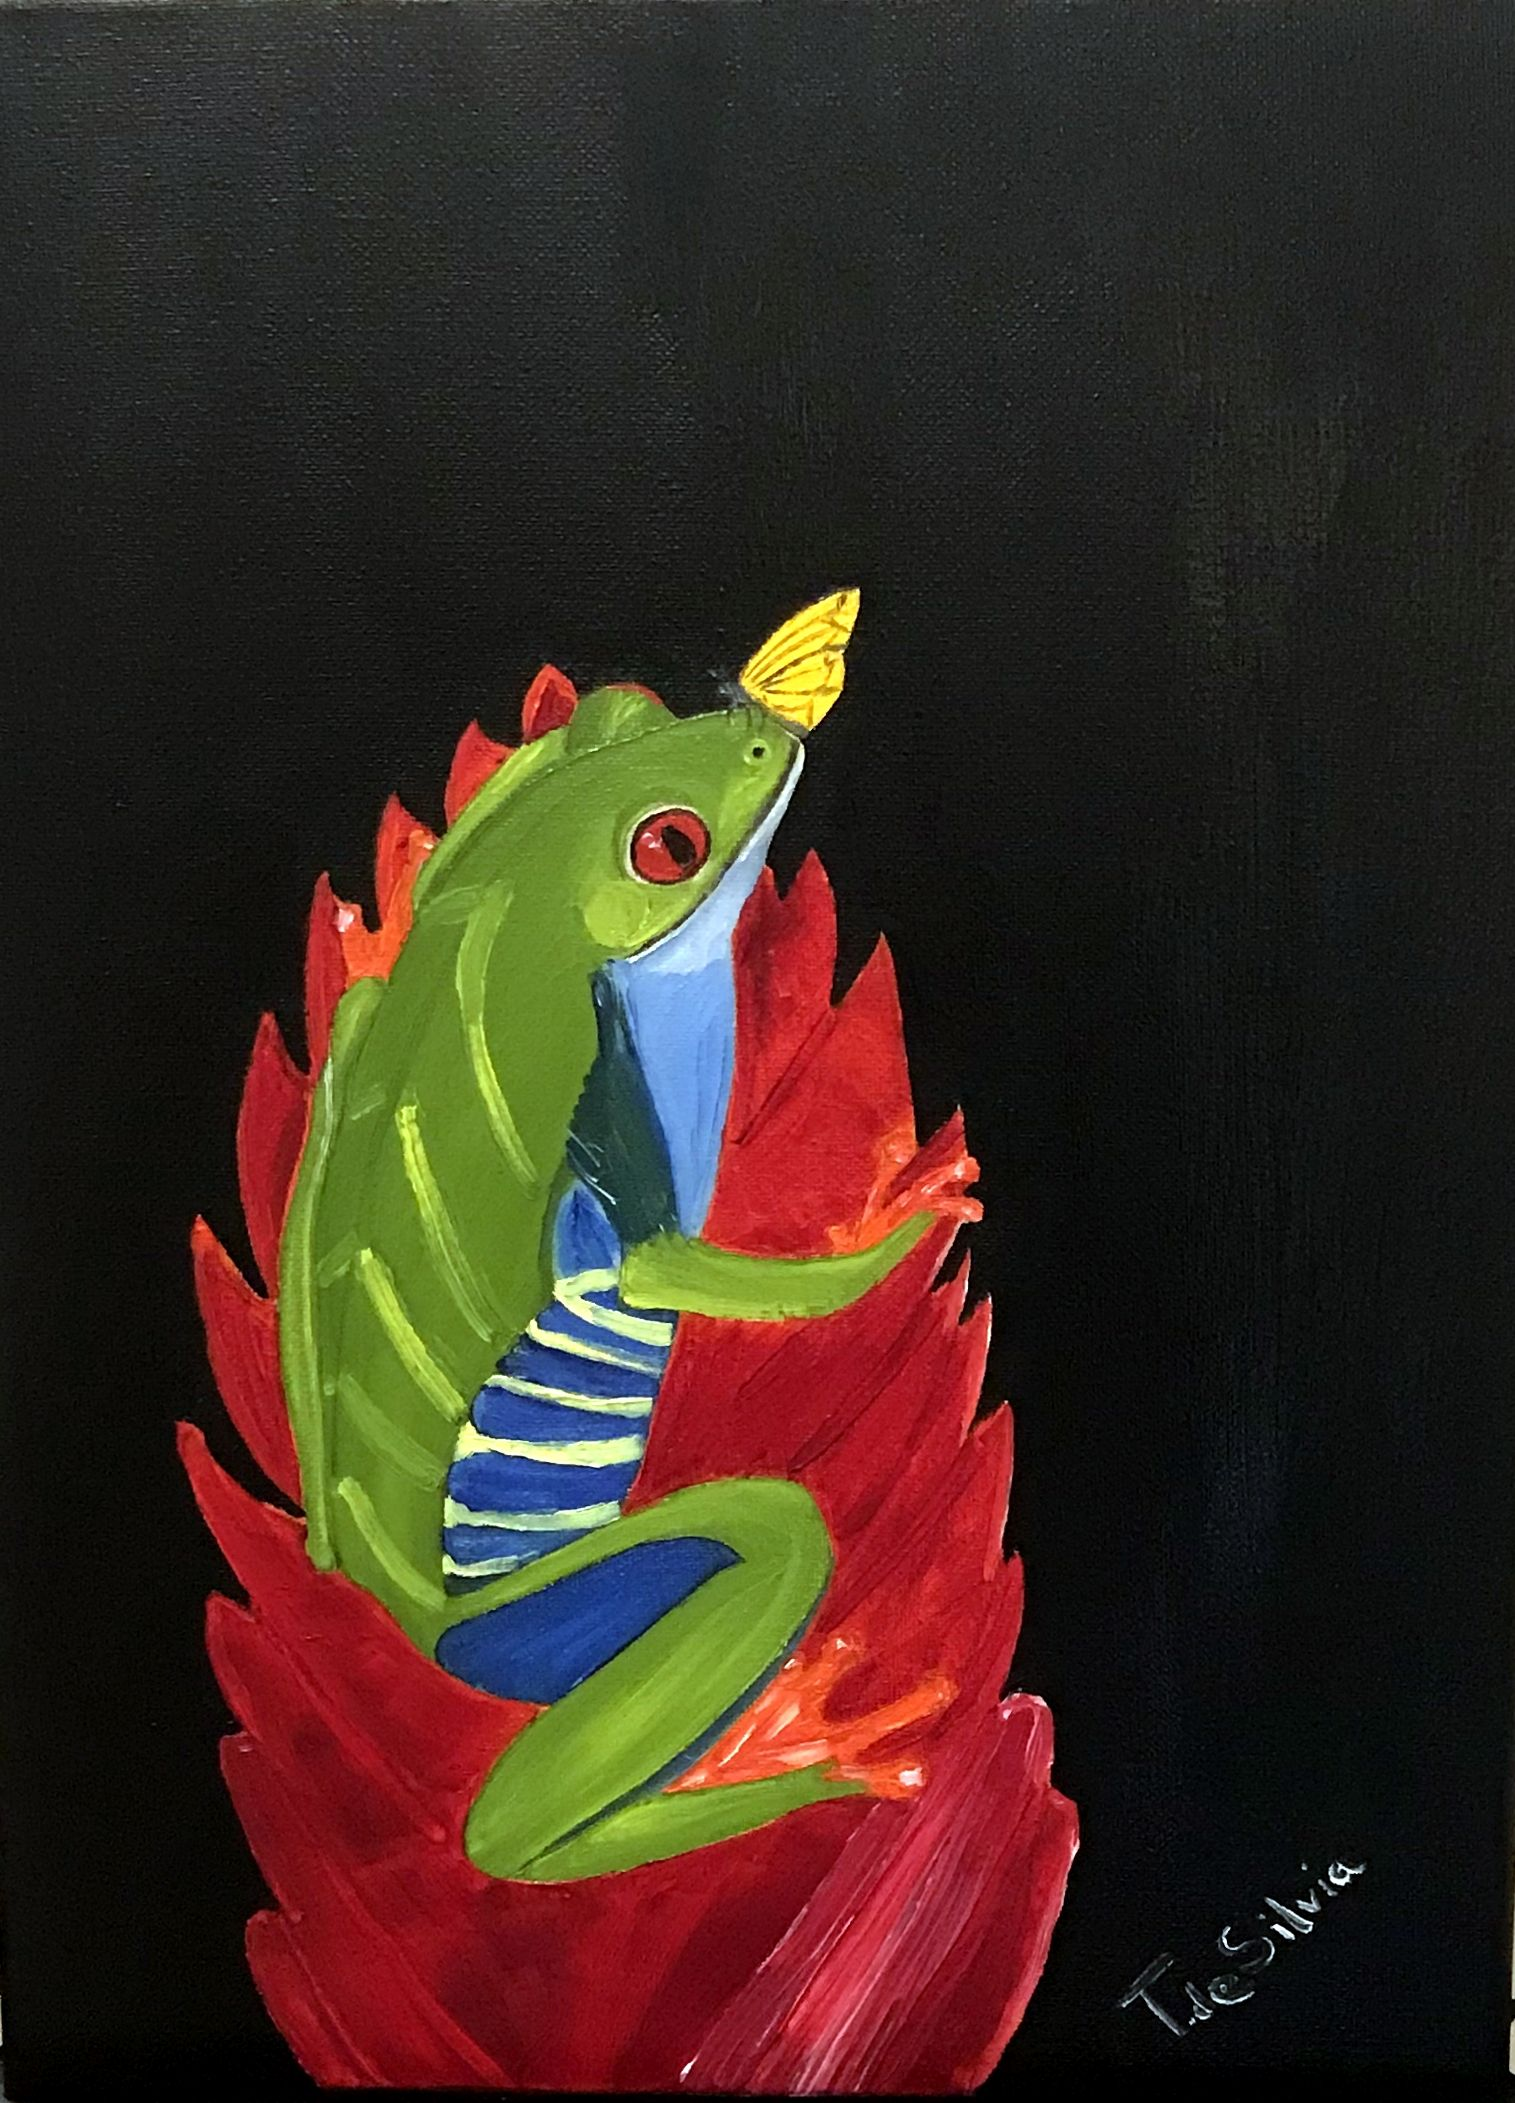 44) Frog on a ginger lily - 12 inches x